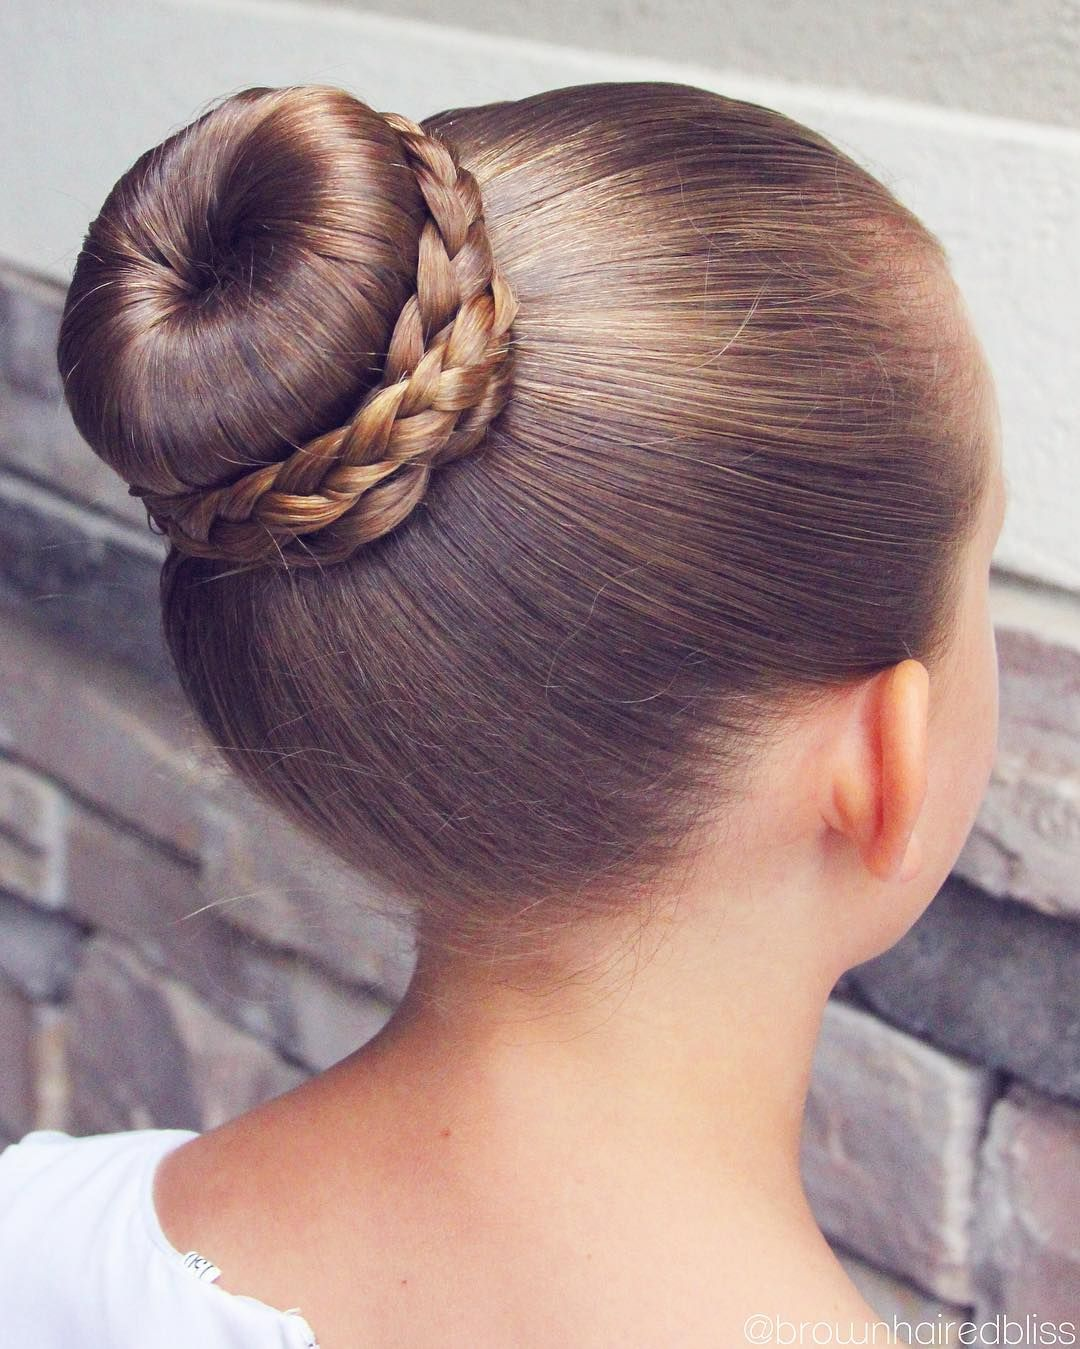 Ballet bun with braids wrapped around dance hair pinterest